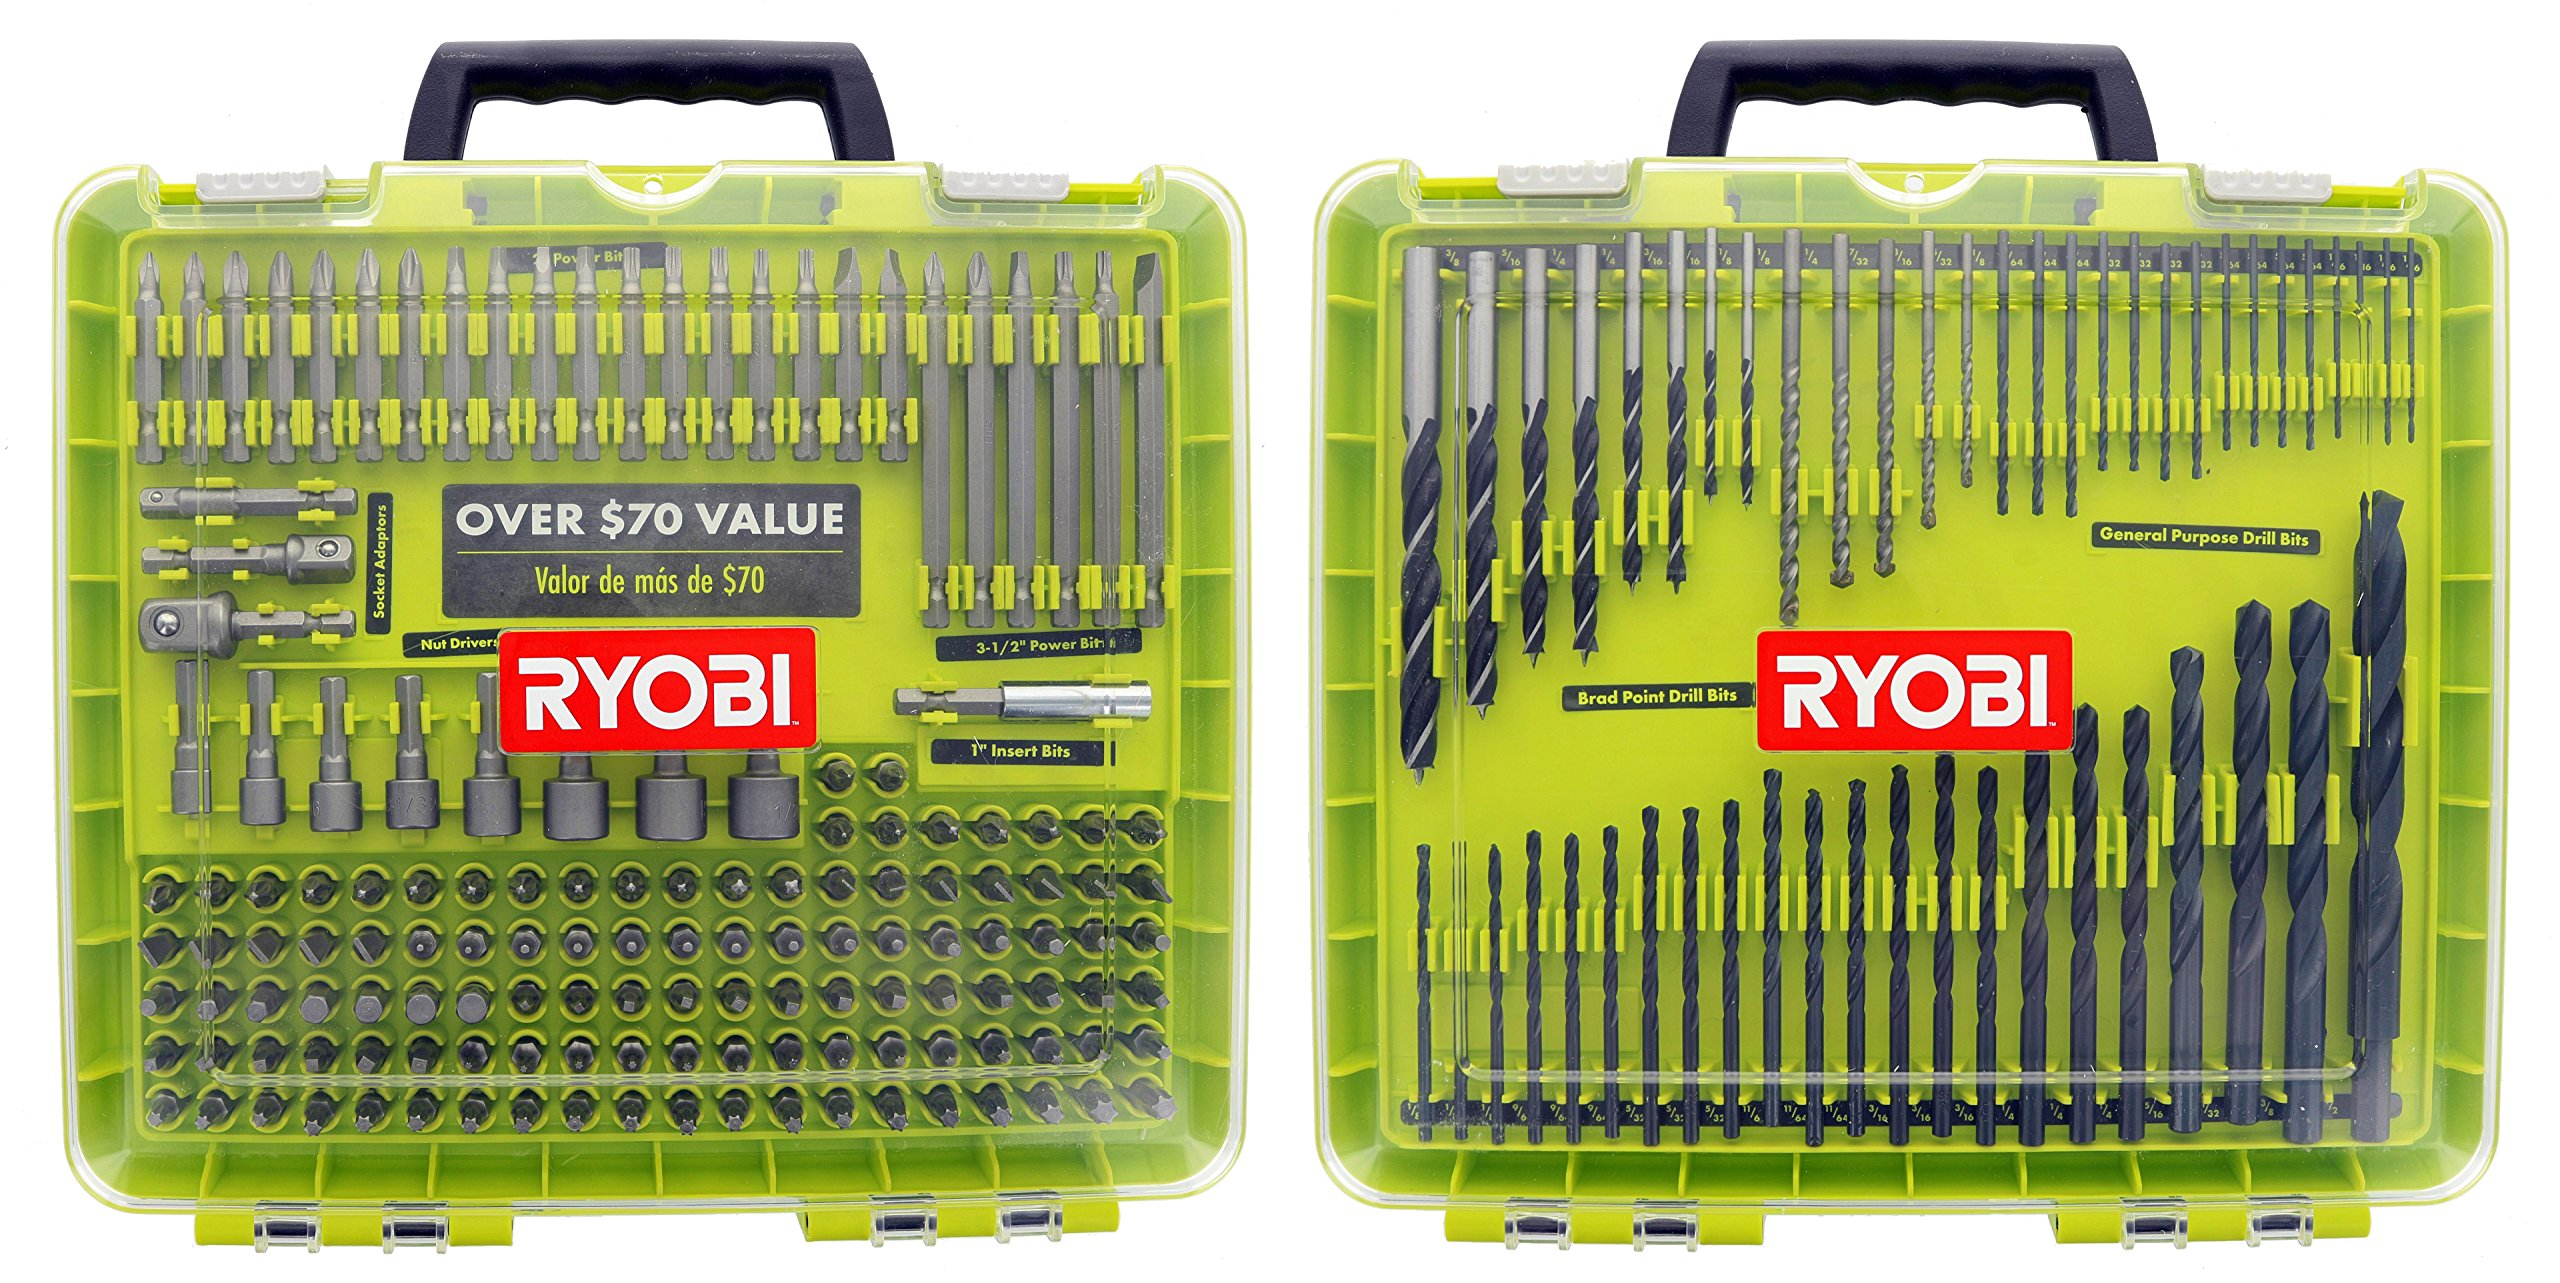 Ryobi A981952QP 195 Piece Drilling and Driving Kit for Wood, Plastic, Metal, and Masonry Work by Ryobi